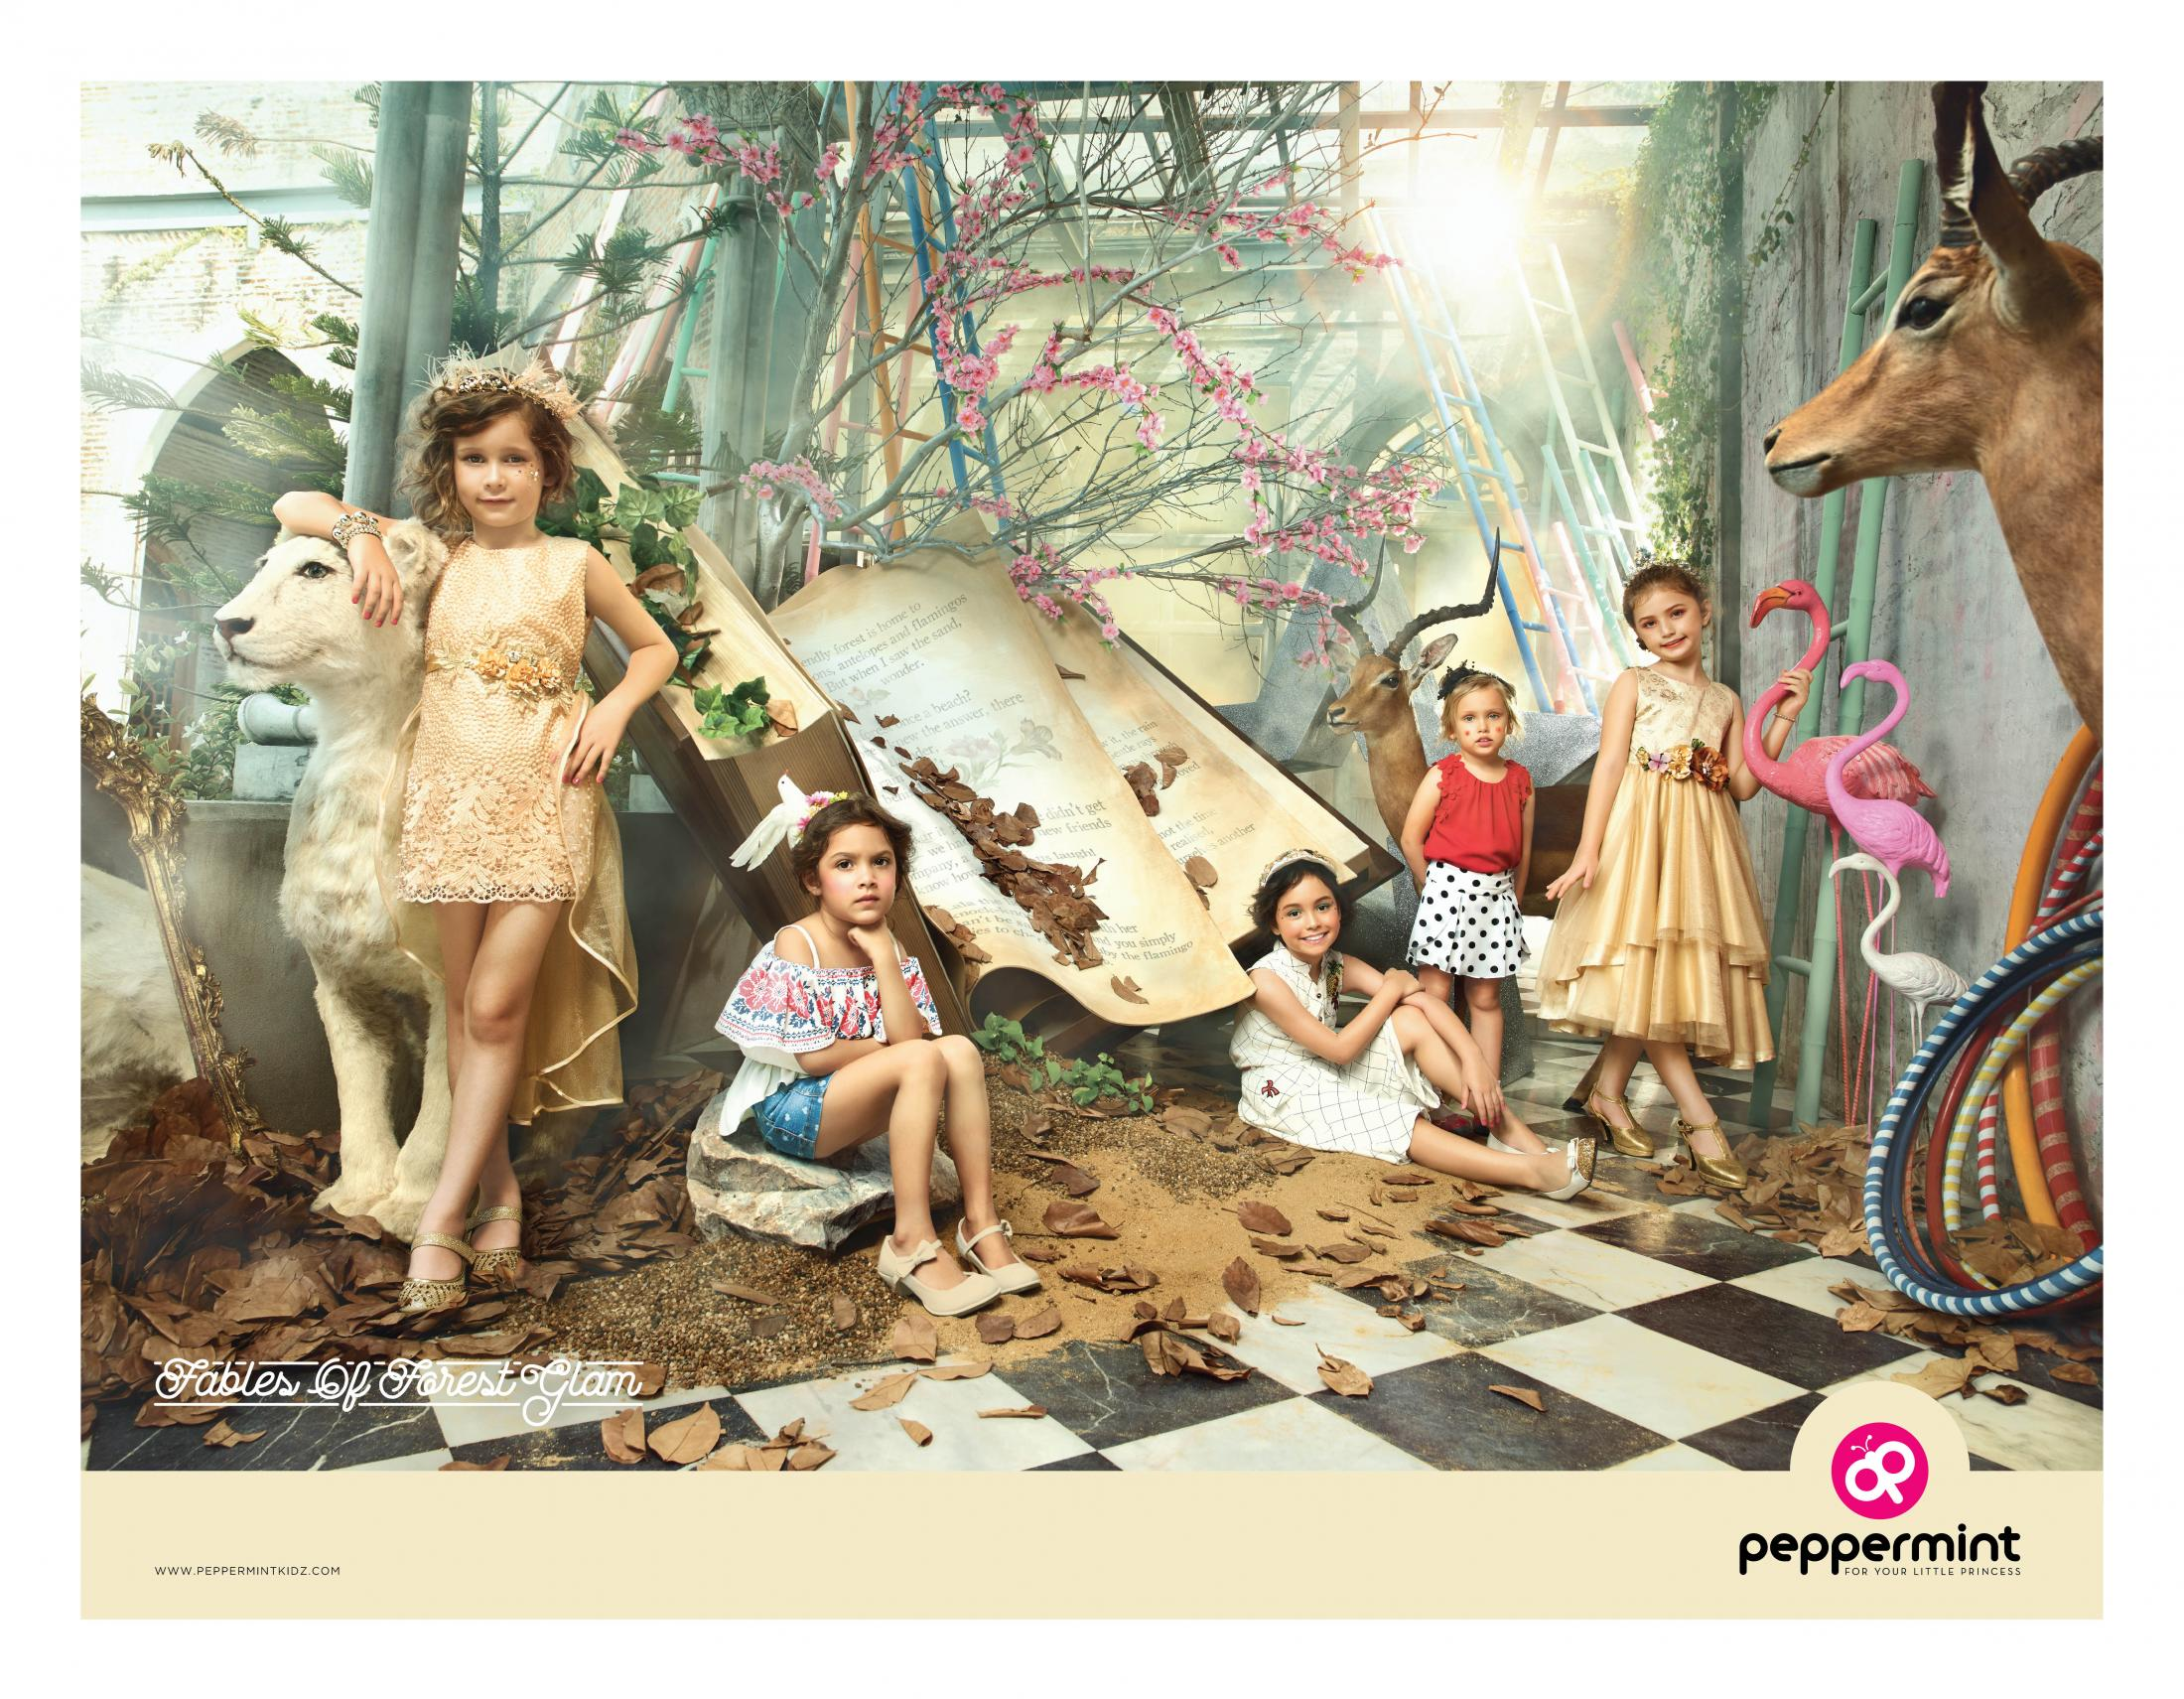 Peppermint Print Ad - Fables of Forest Glam